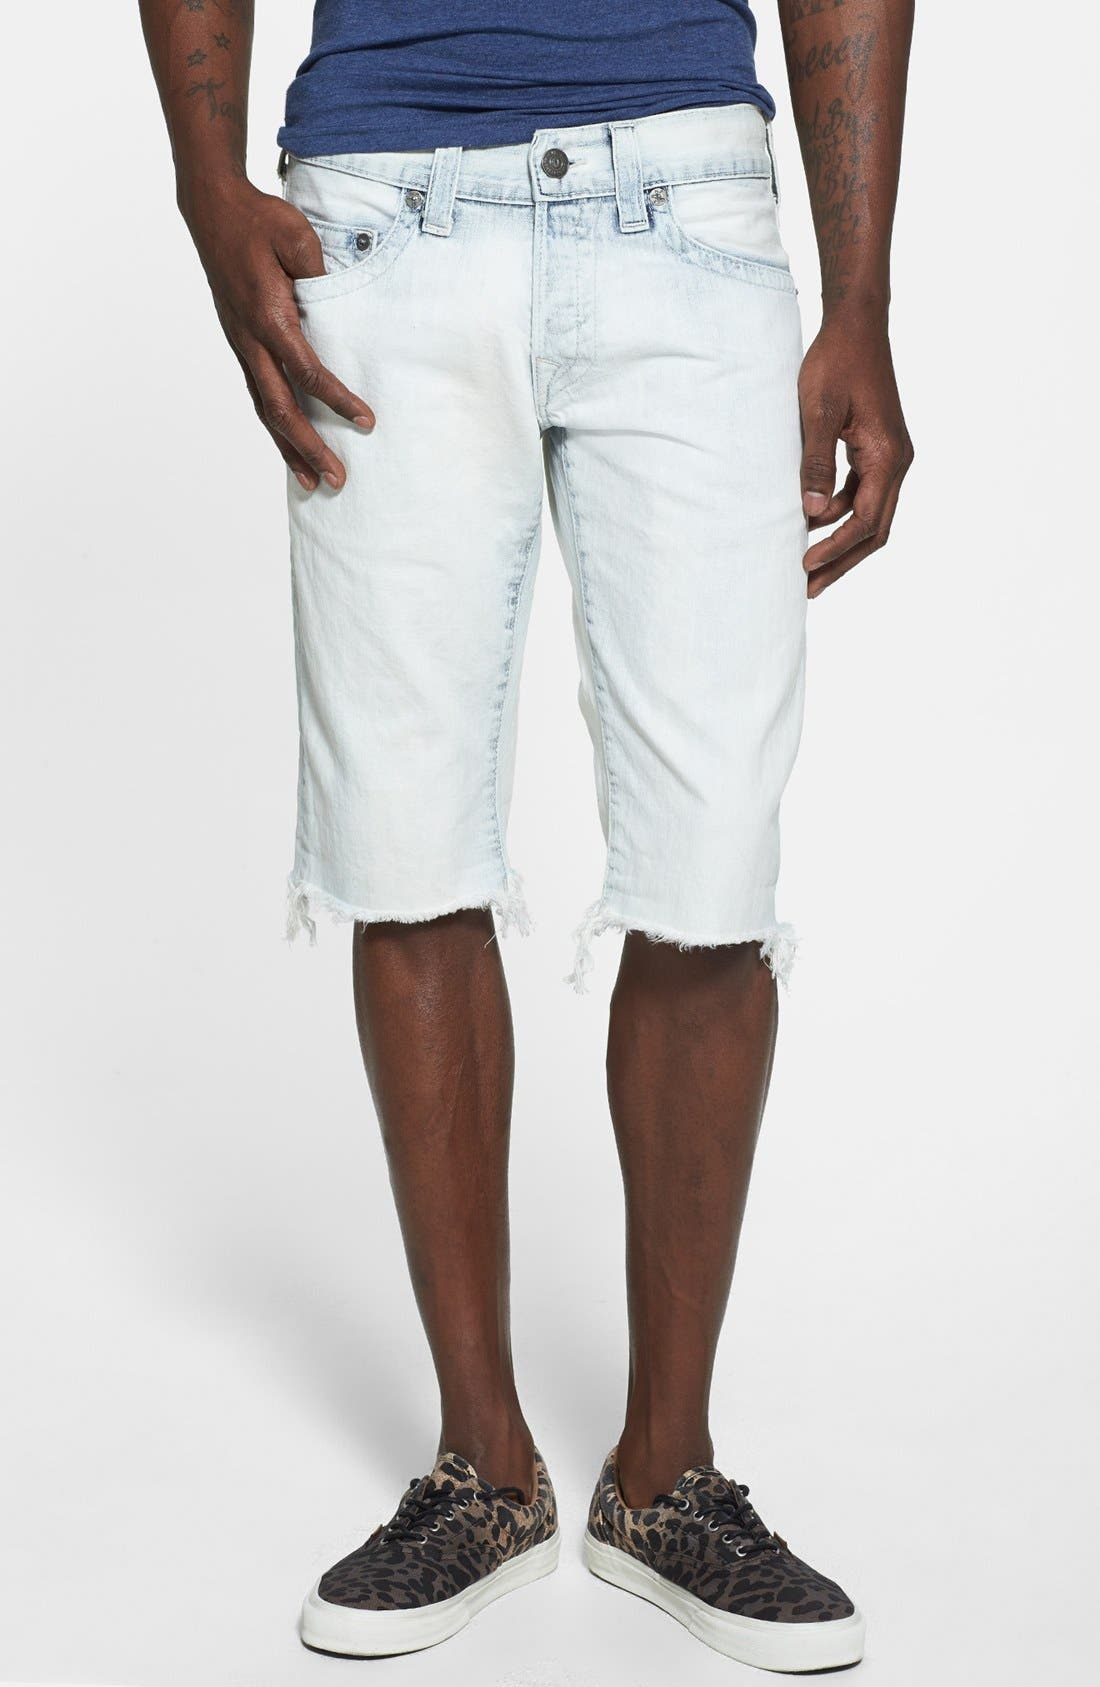 Main Image - True Religion Brand Jeans 'Geno' Cutoff Denim Shorts